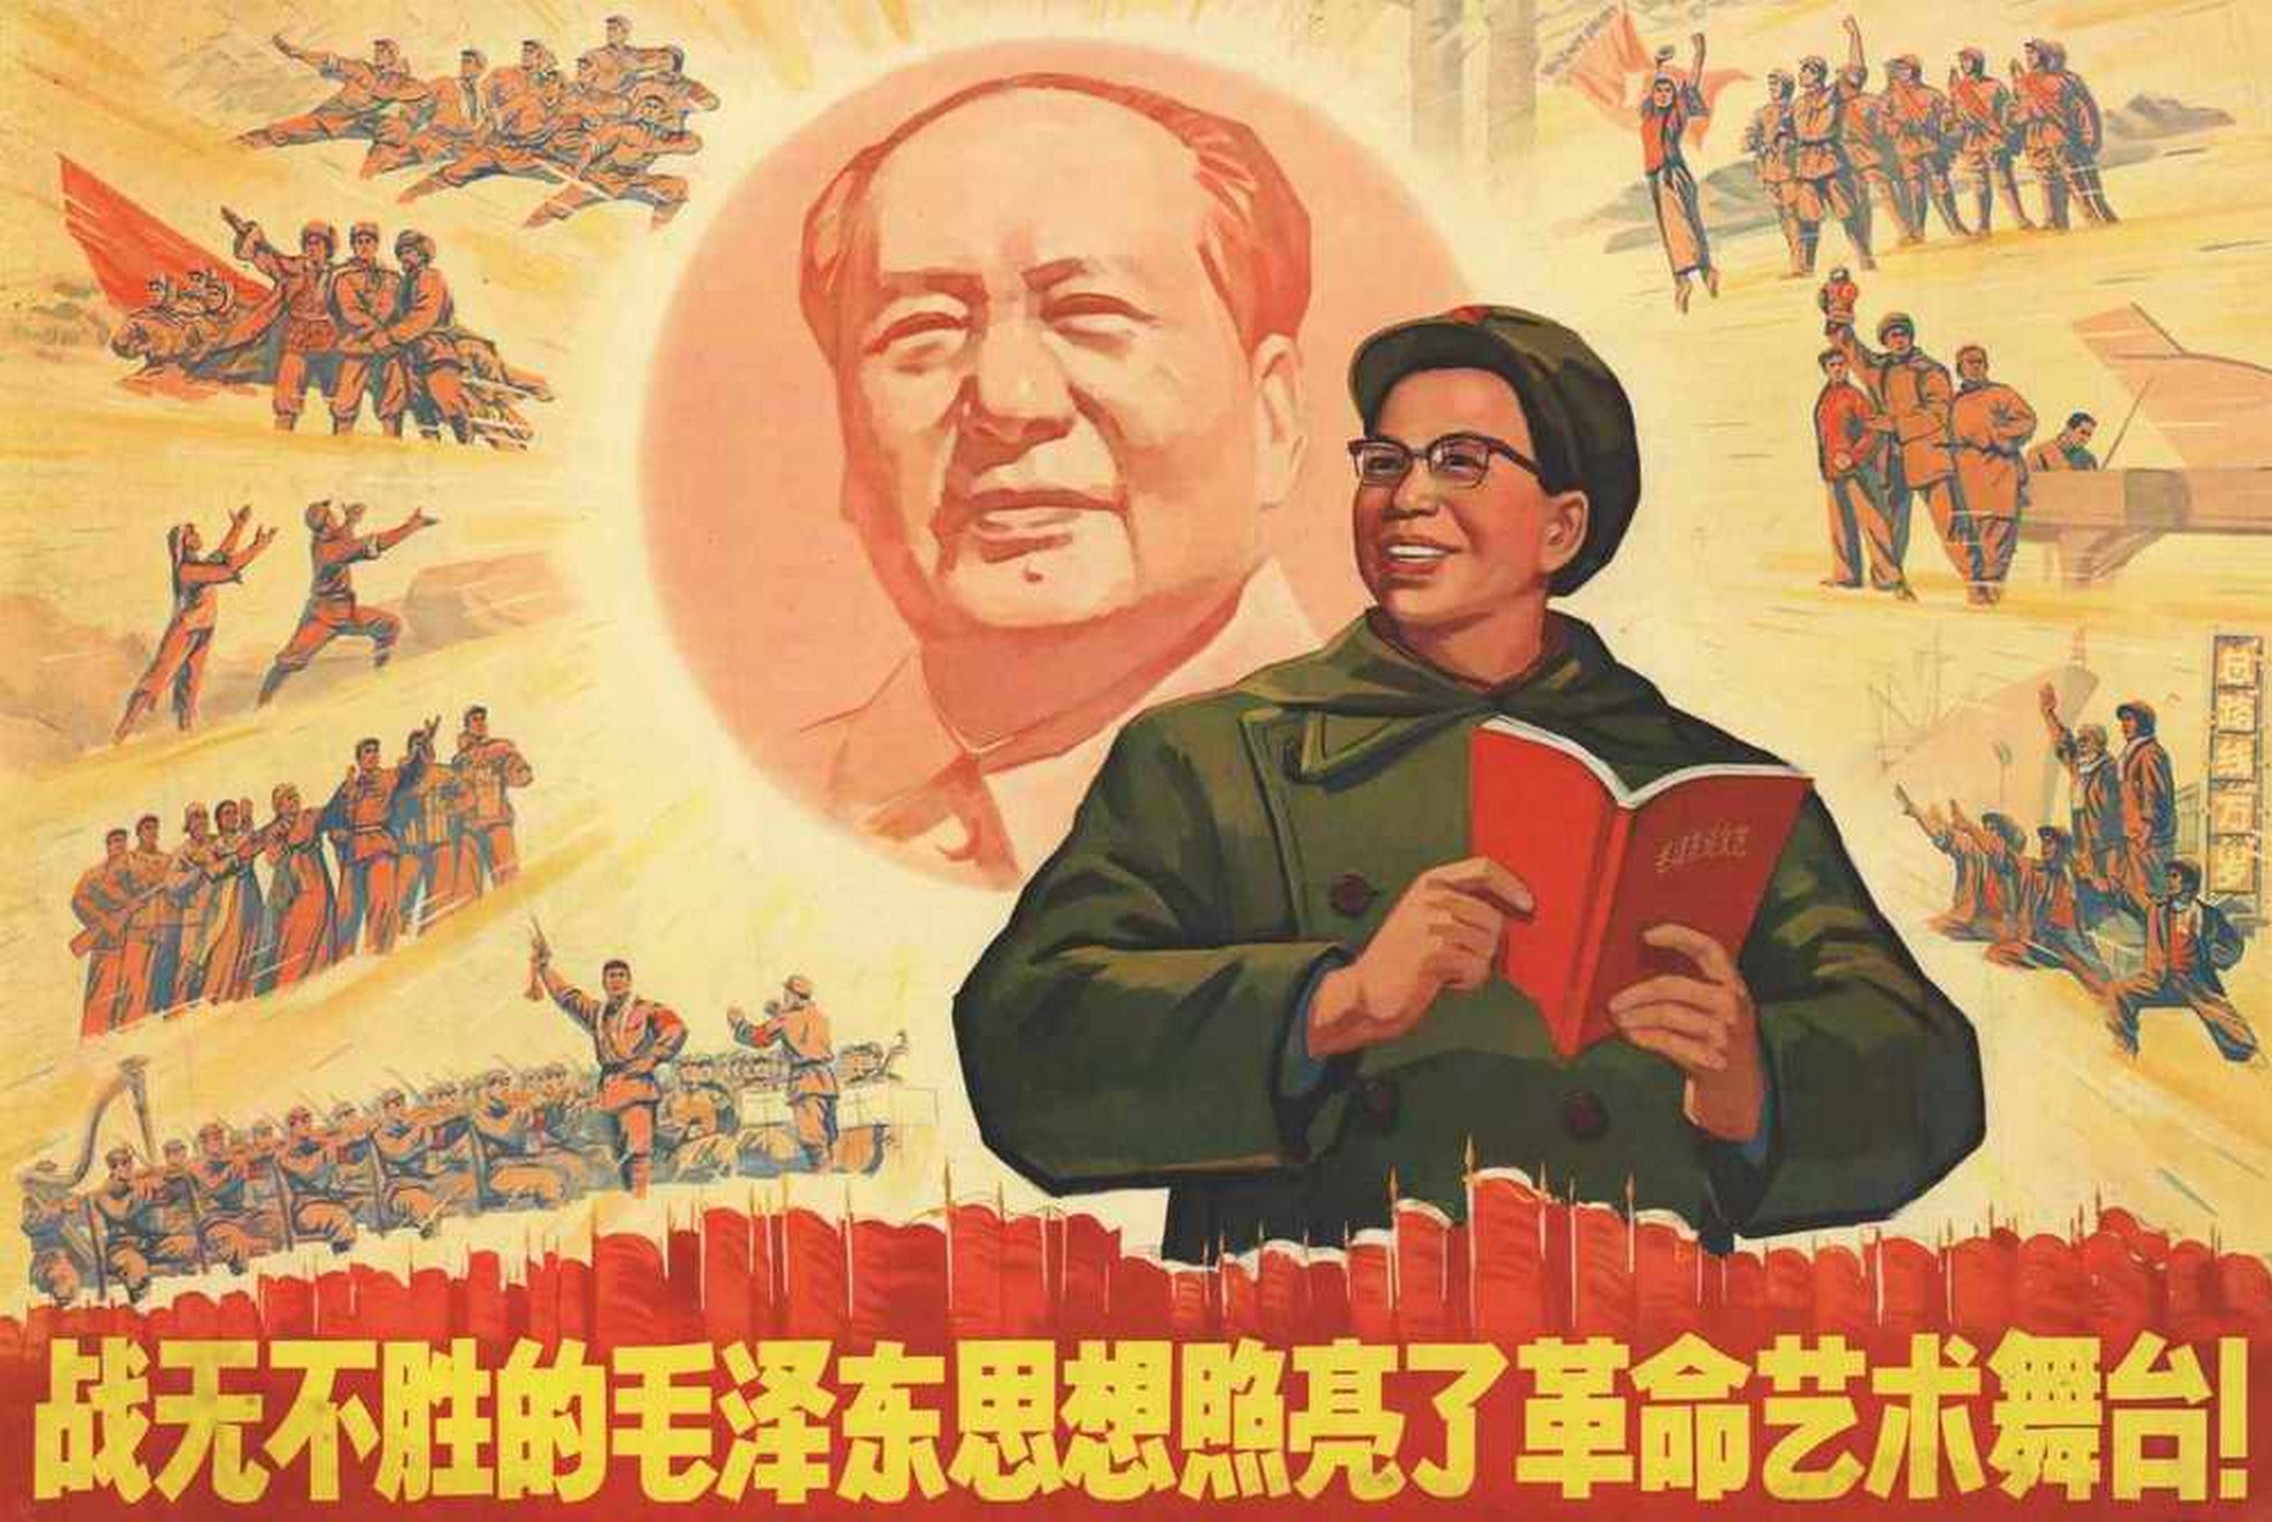 account of chinas cultural revolution More than 45 years ago, chairman mao zedong launched the tumultuous great proletarian cultural revolution, which led to the destruction of millions of chin.